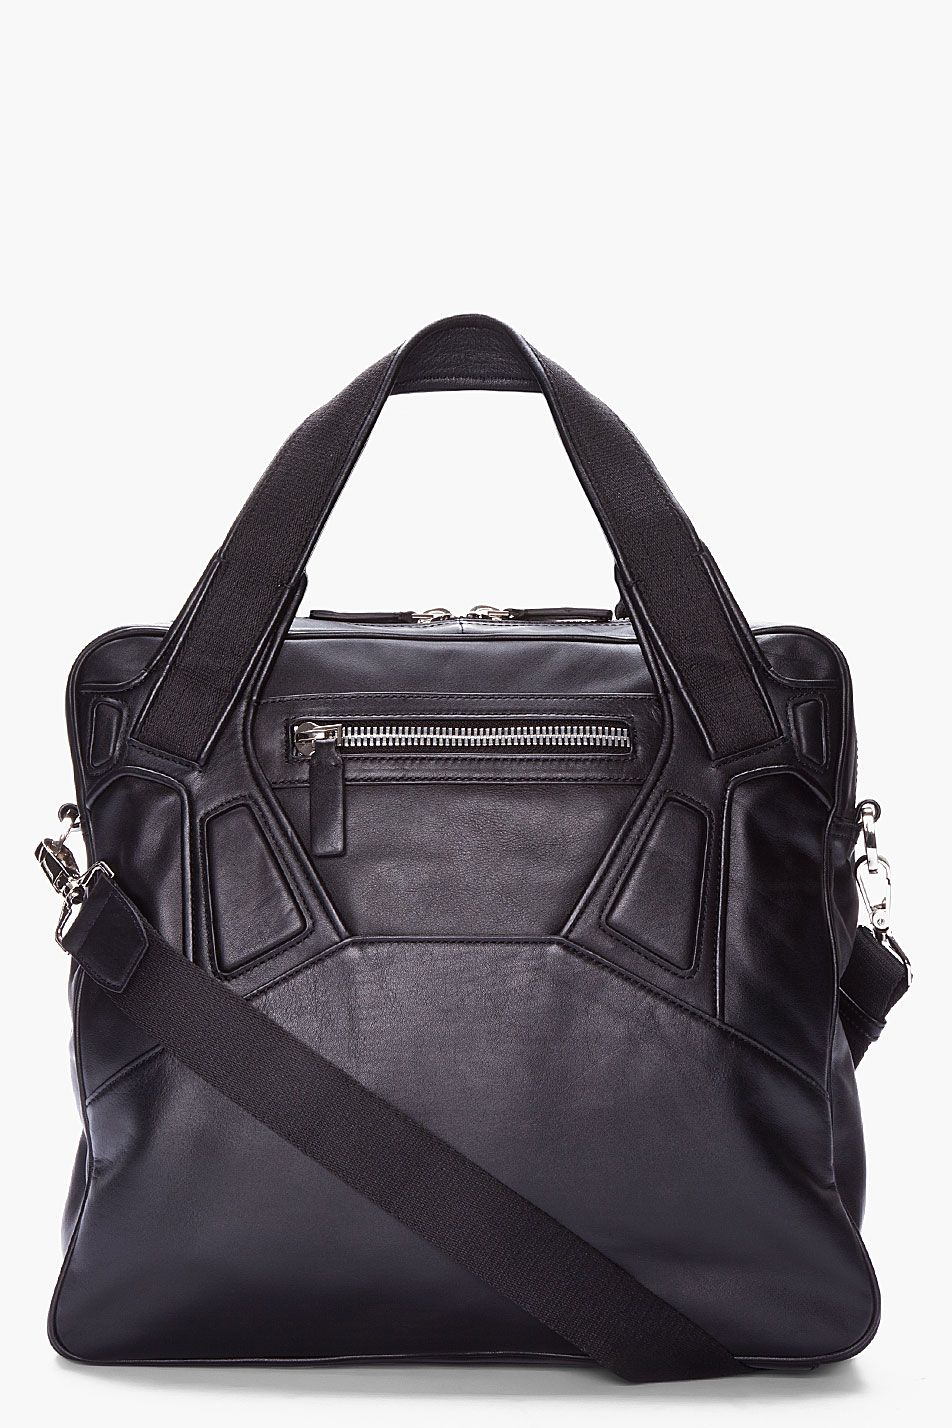 Alejandro Ingelmo Black Leather Avenue Tote Man Bag Shoe Bag Leather